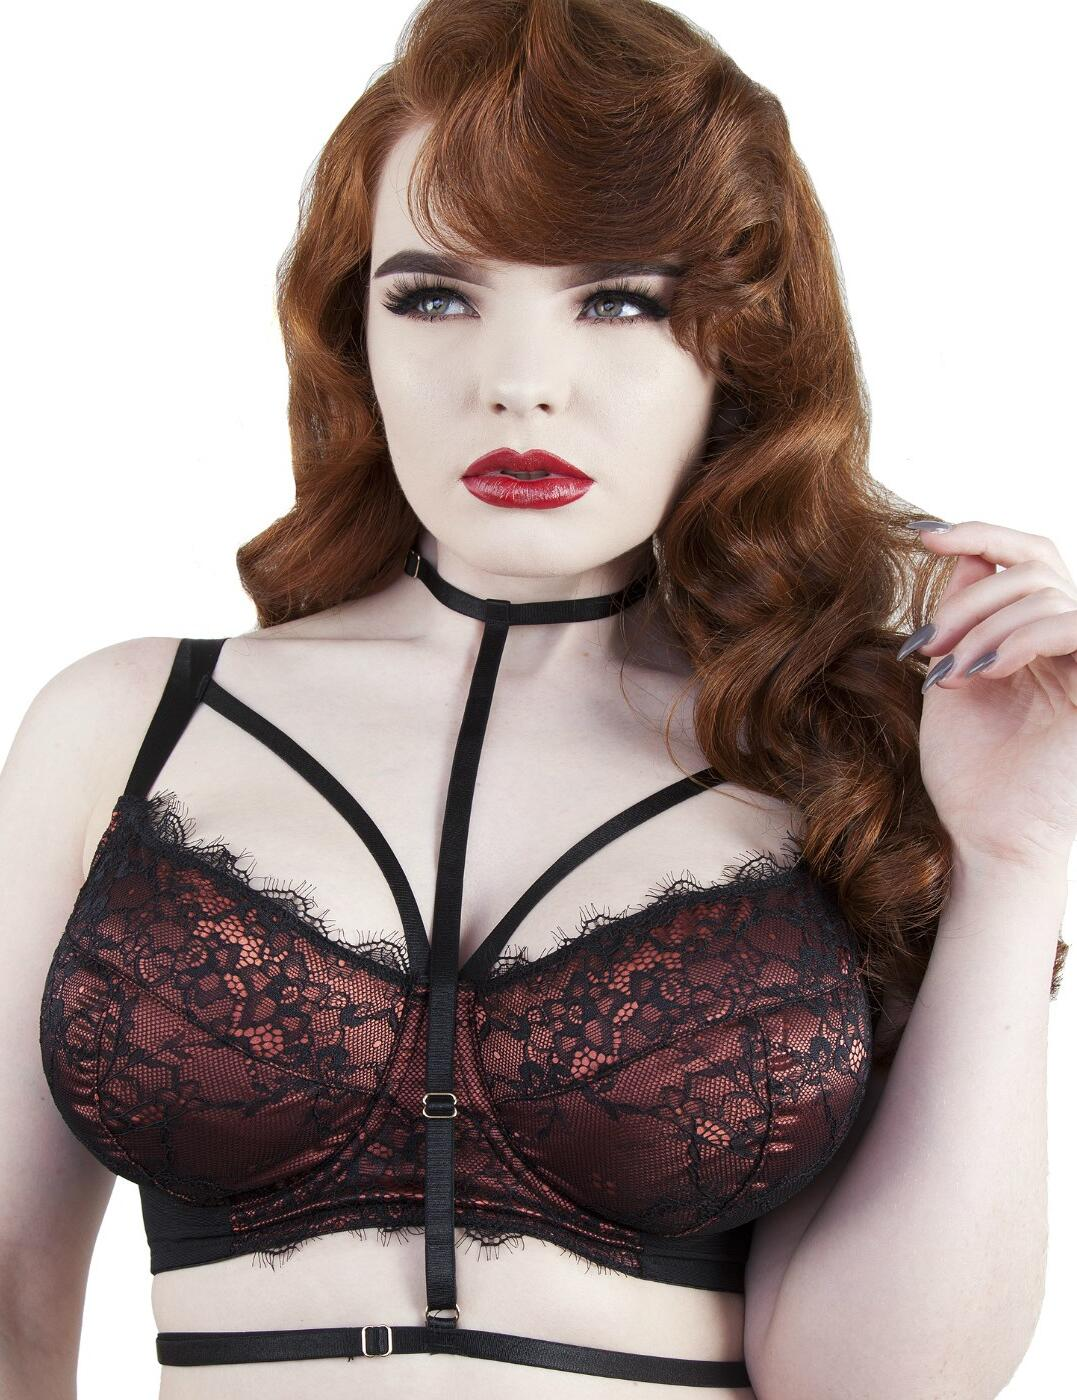 PPFB3057R Playful Promises Irena Underwired Satin And Lace Fuller Bust Bra With Harness - PPFB3057R Rust